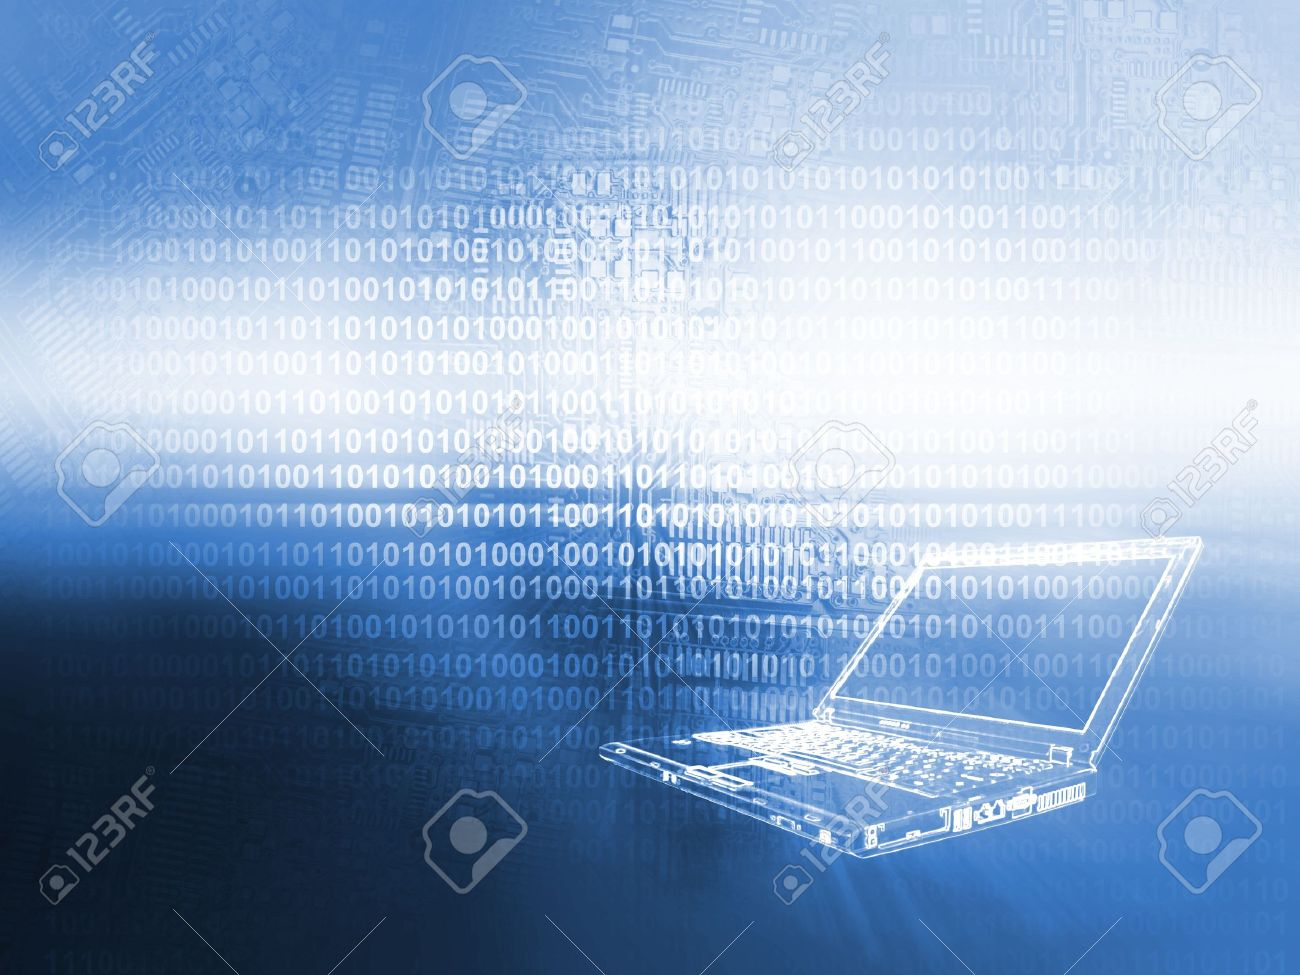 Laptop Technology Background Stock Photo, Picture And Royalty Free